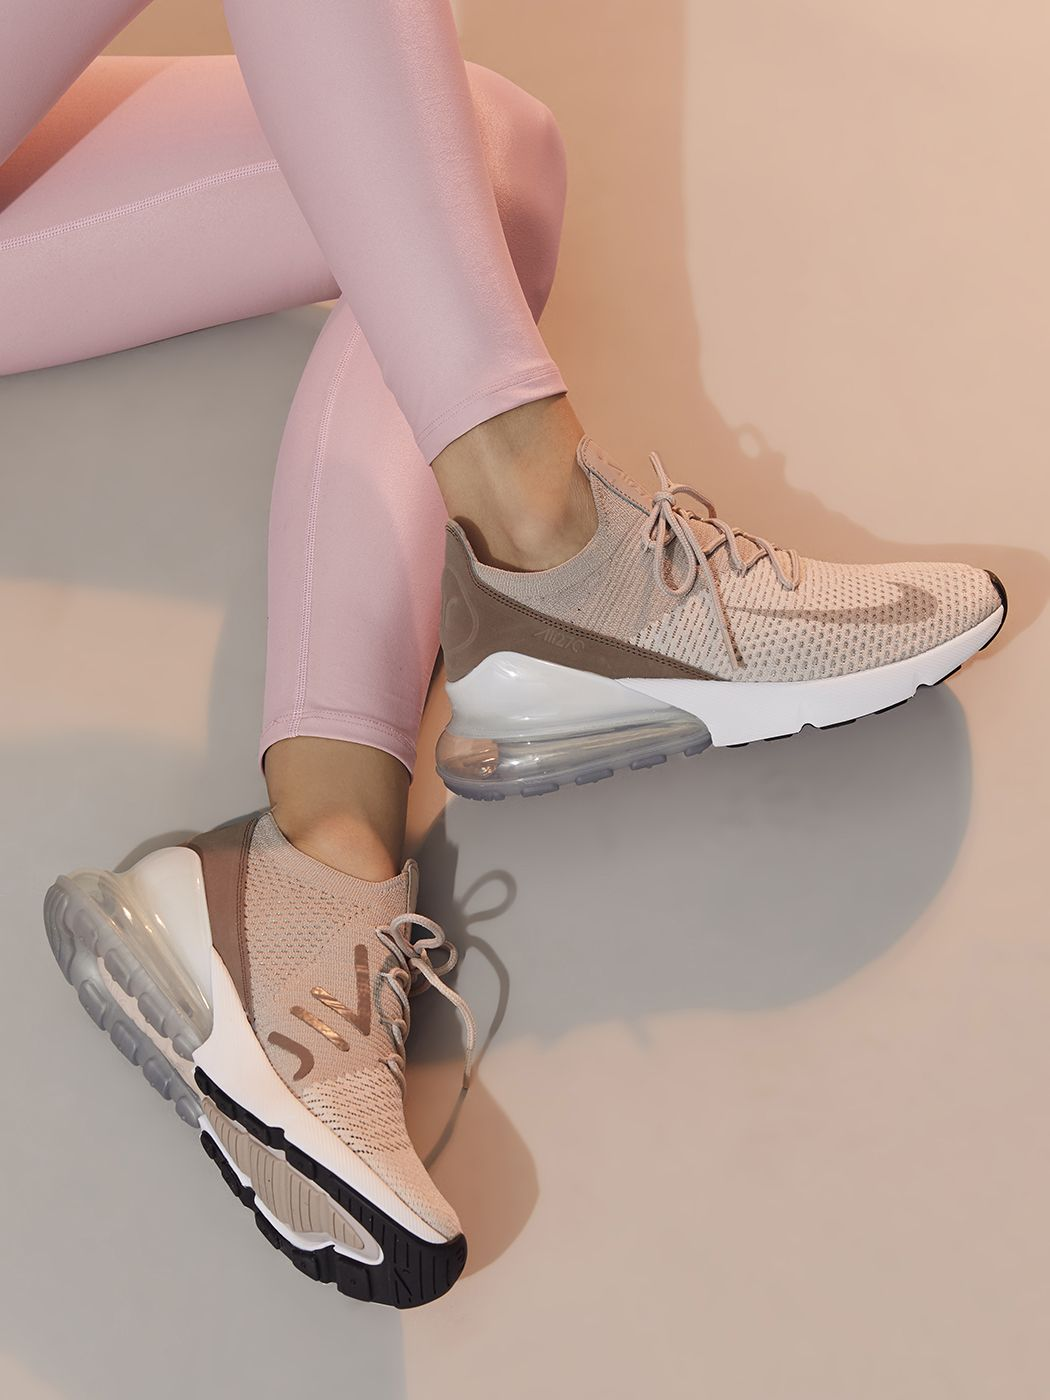 Nike Air Max 270 Flyknit in Guava Iceparticle Beige desert